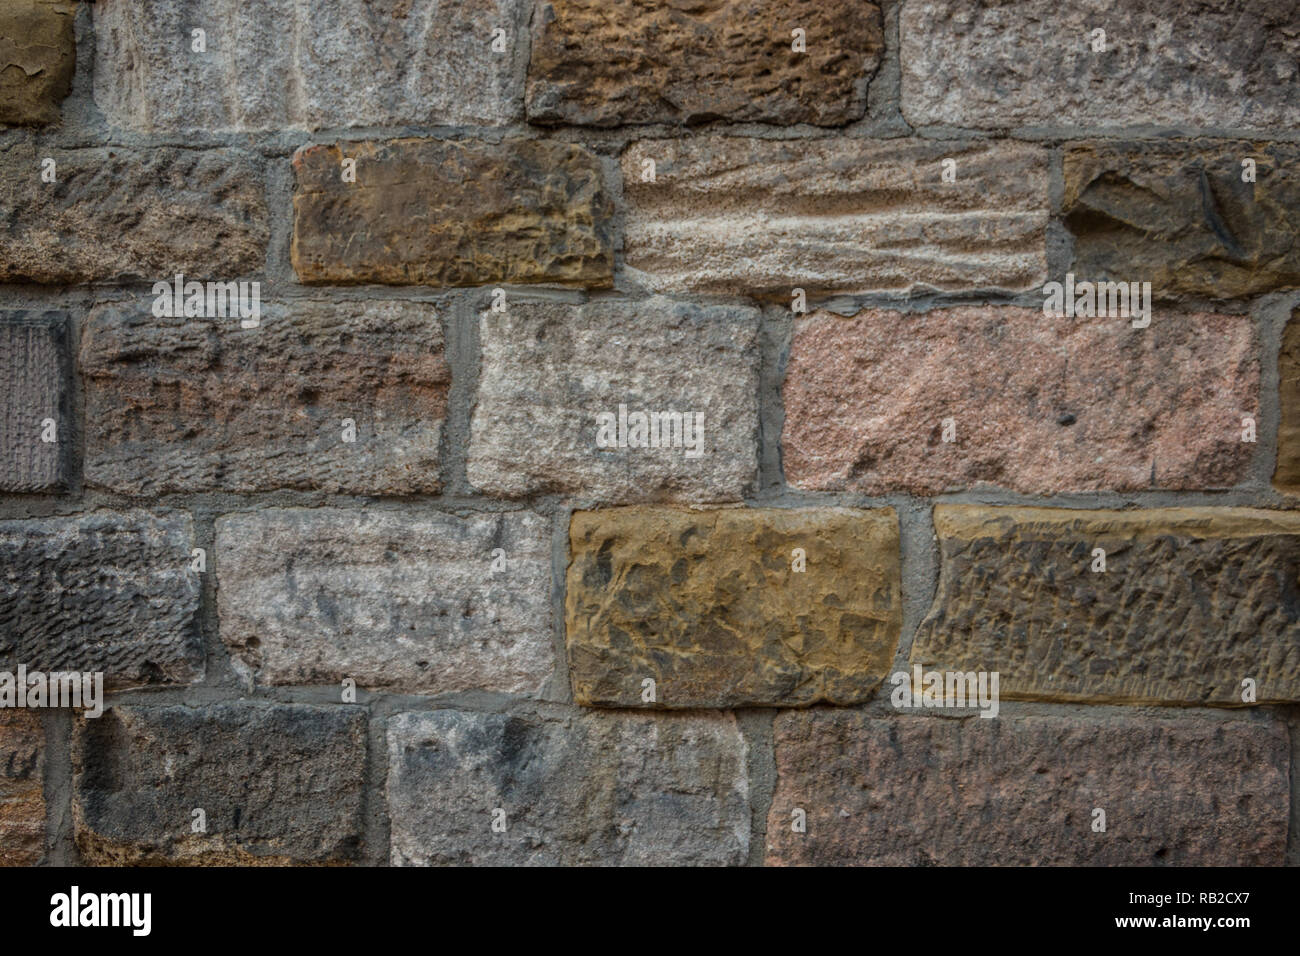 Old wall of a historical building with different colored stones - Stock Image